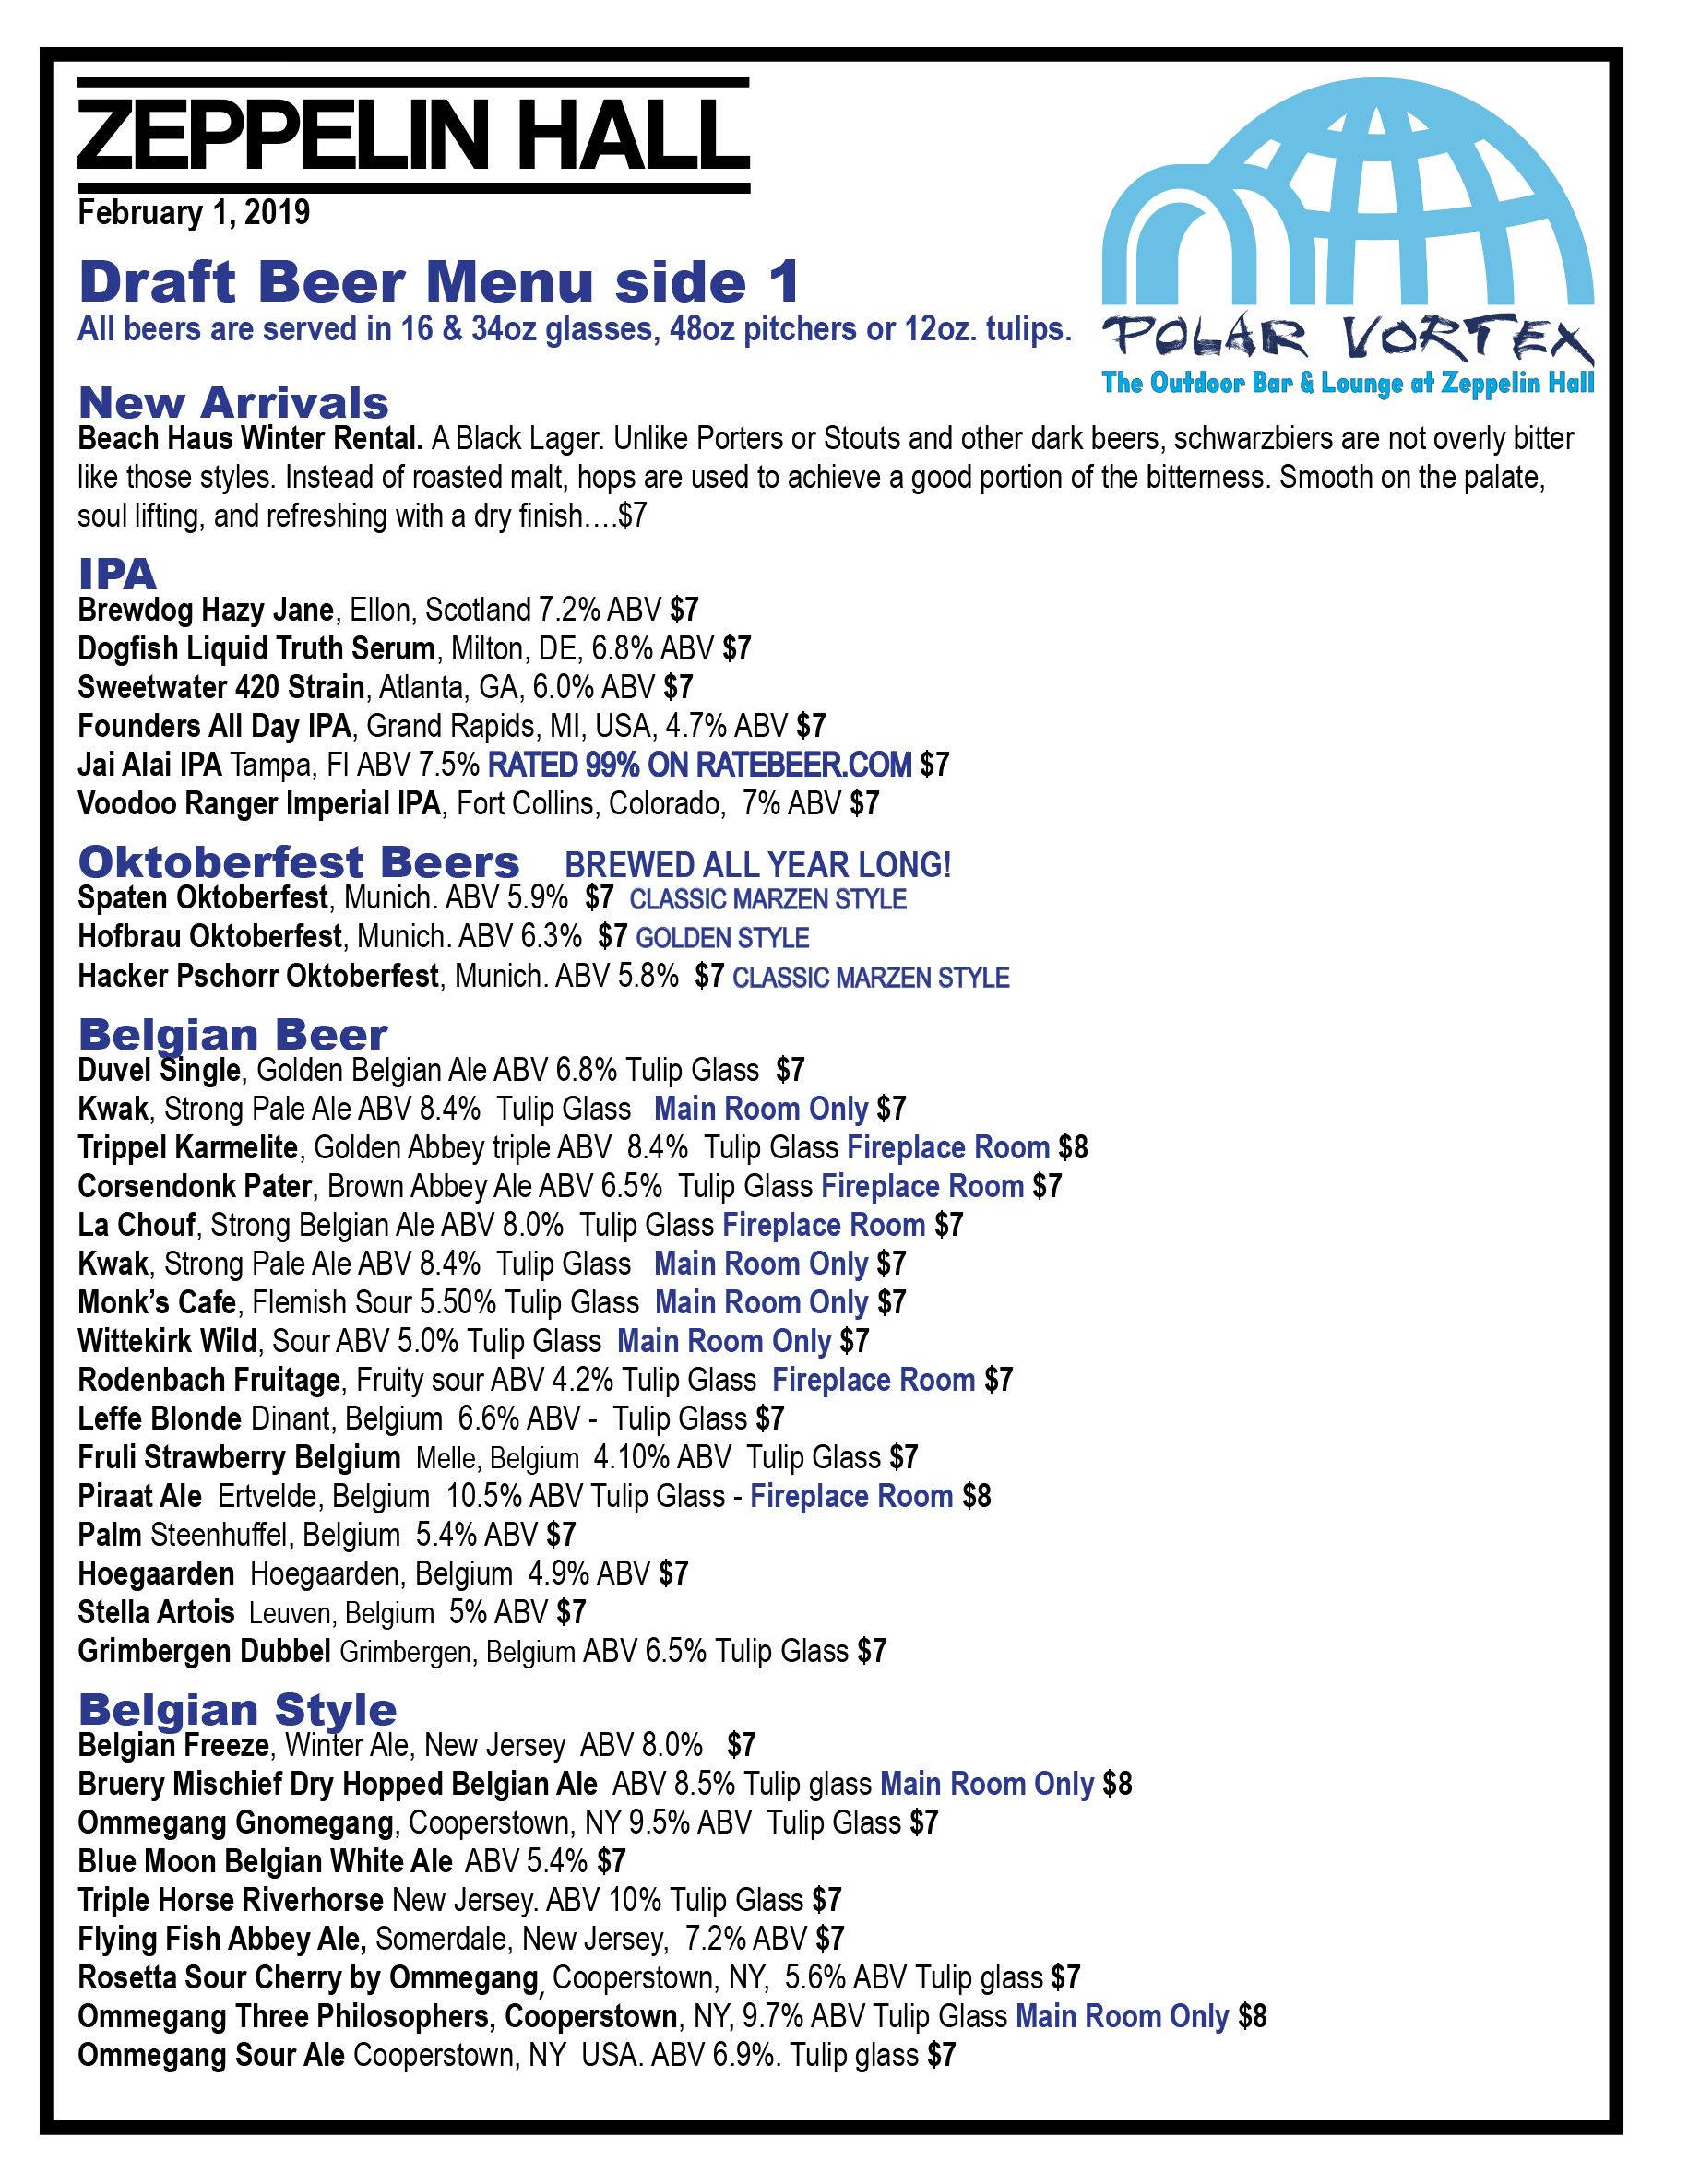 Zeppelin Hall Beer Menu